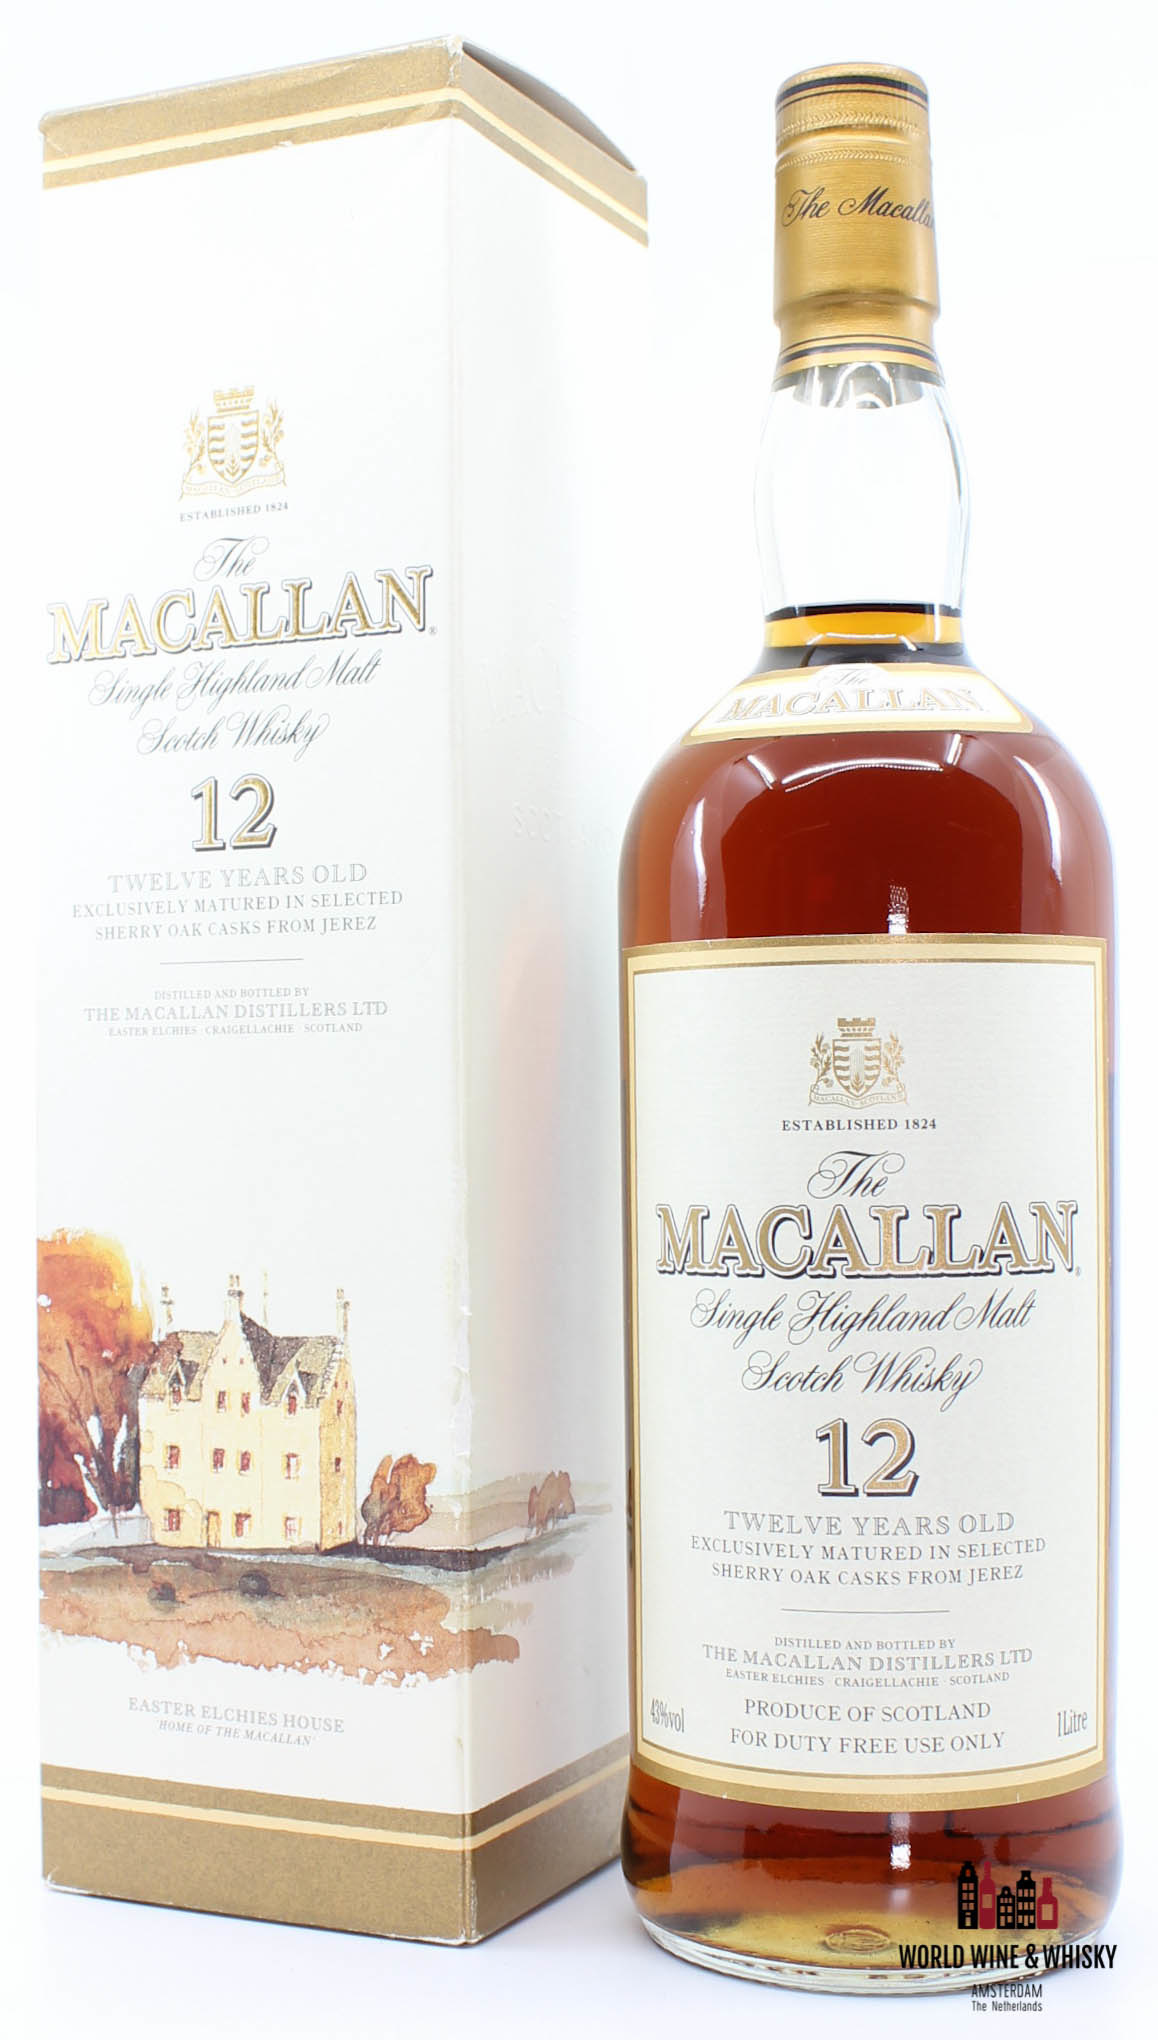 Macallan Macallan 12 Years Old Sherry Casks - Duty Free use only 43% 1 litre (1000 ml)